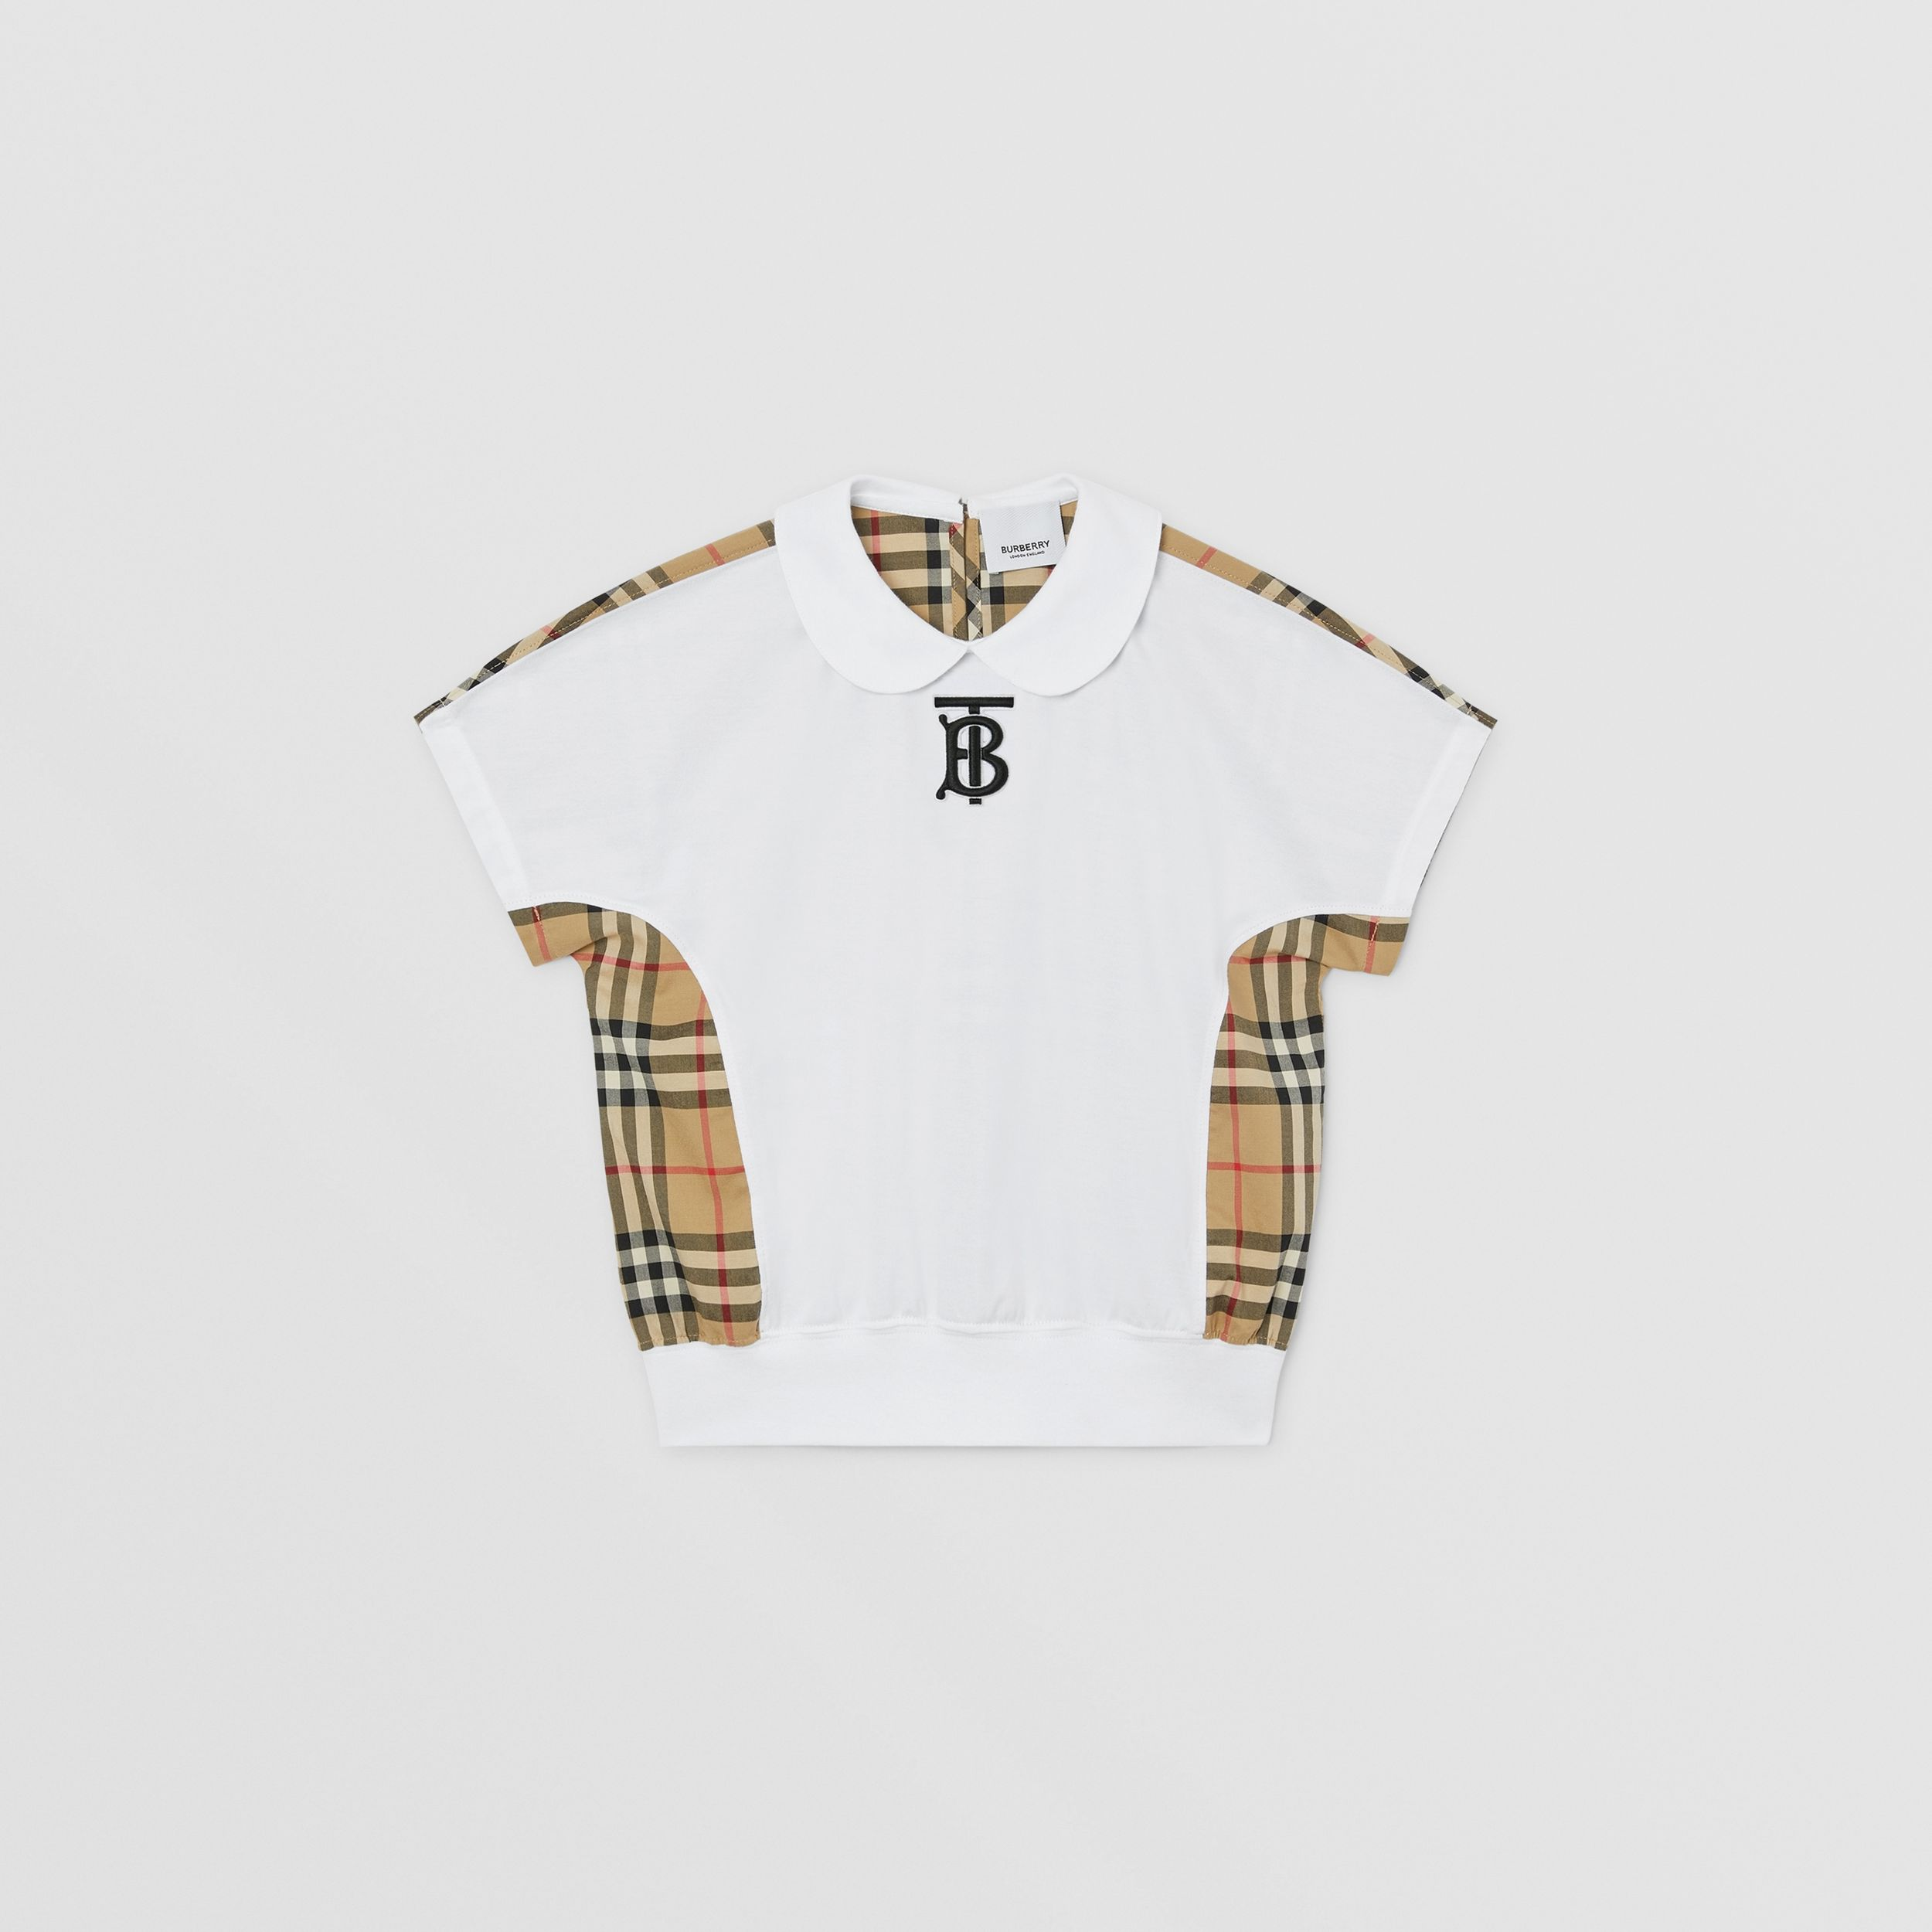 Monogram Motif Vintage Check Panel Cotton T-shirt in Archive Beige | Burberry Canada - 1